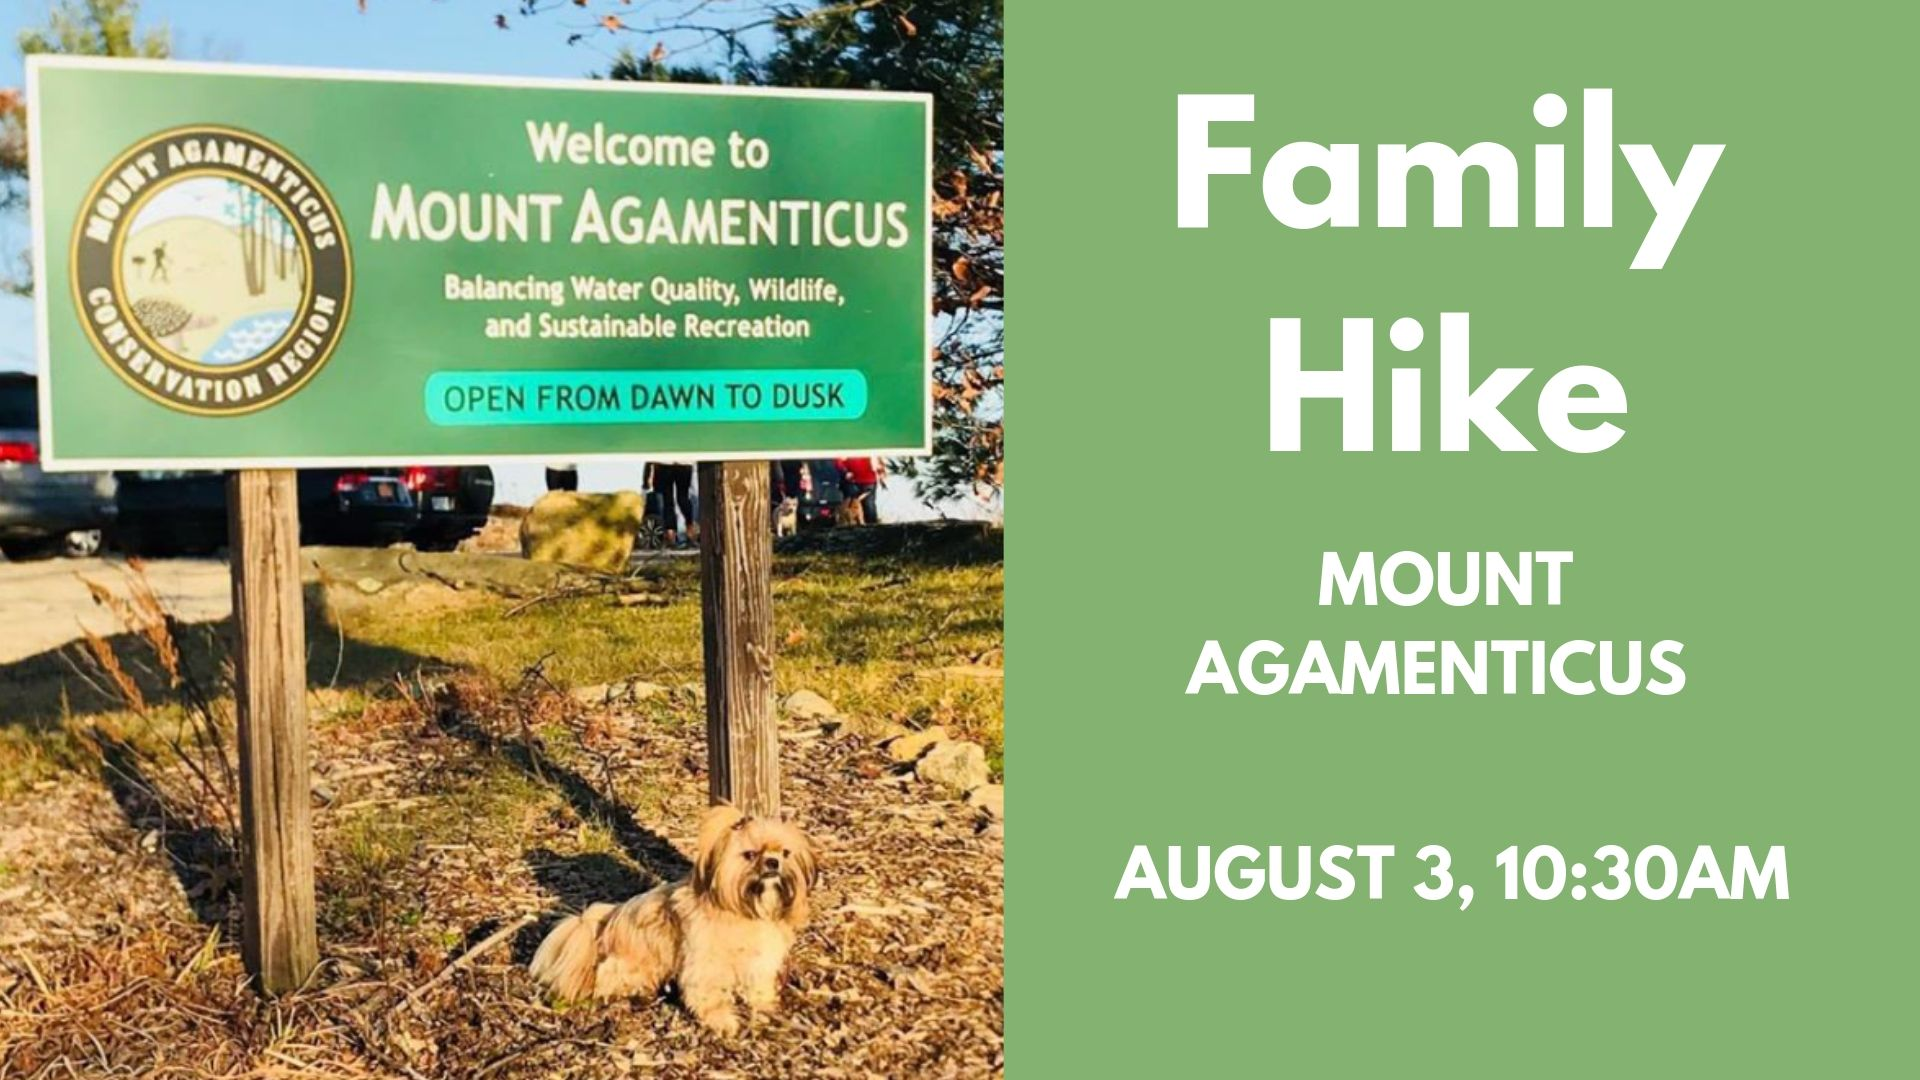 BRING THE FAMILY ALONG FOR THIS EASY HIKE UP MOUNT AGAMENTICUS. MEET AT 10:30AM TO START HIKING AT 10:45AM. FOR MORE DETAILS AND TO RSVP VISIT OUR FACEBOOK EVENT.  CLICK HERE  TO GO TO OUR PAGE.